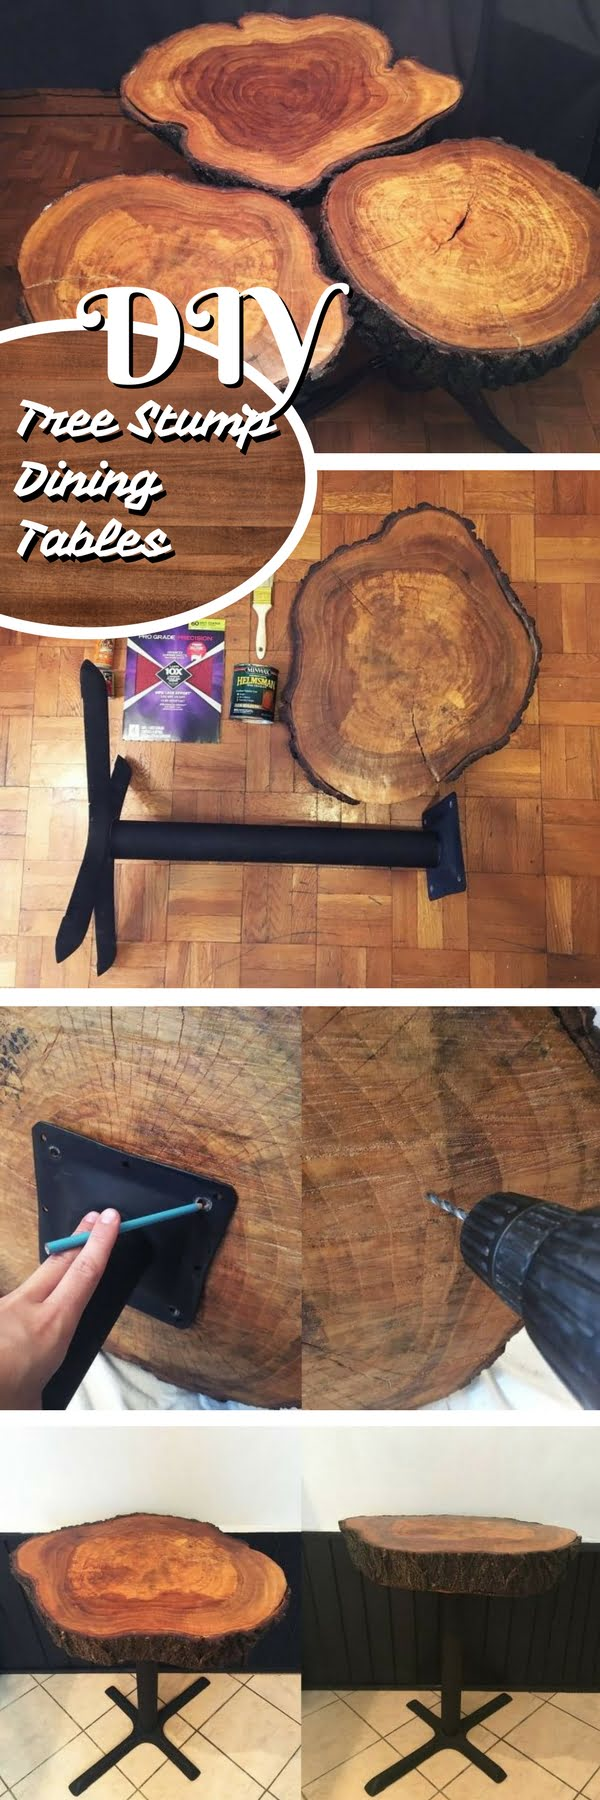 How to build DIY dining room tables from tree trunk